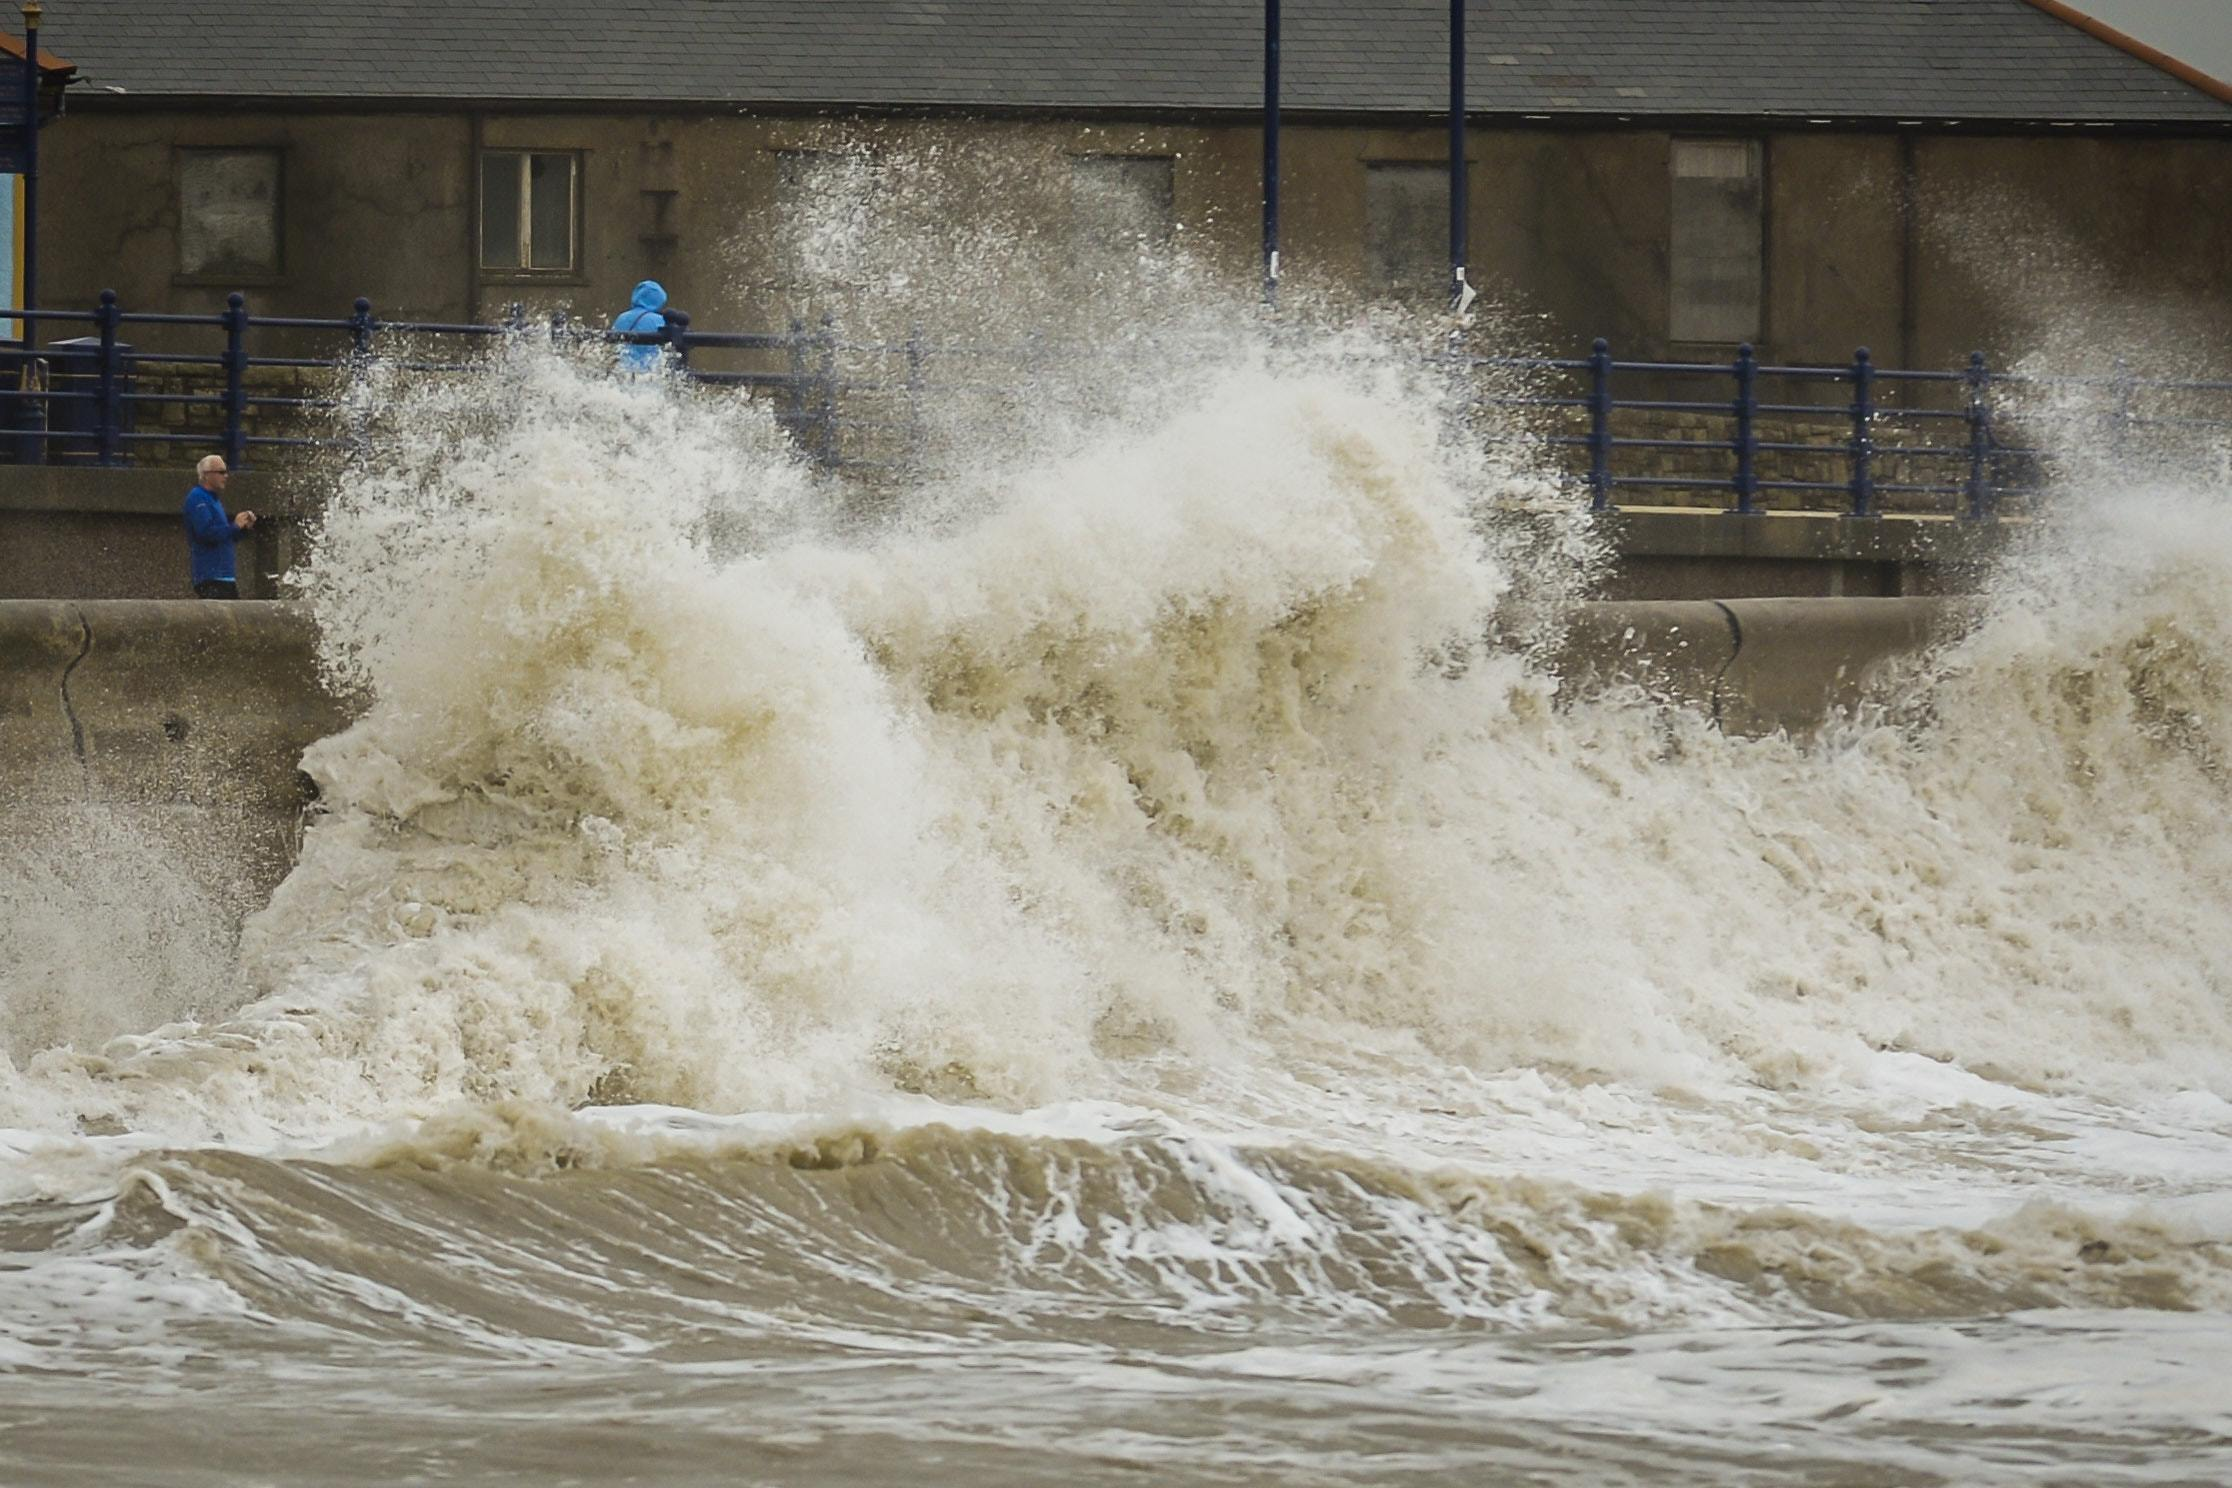 Flooding and road closures this morning as Sheffield recovers from Storm Bronagh